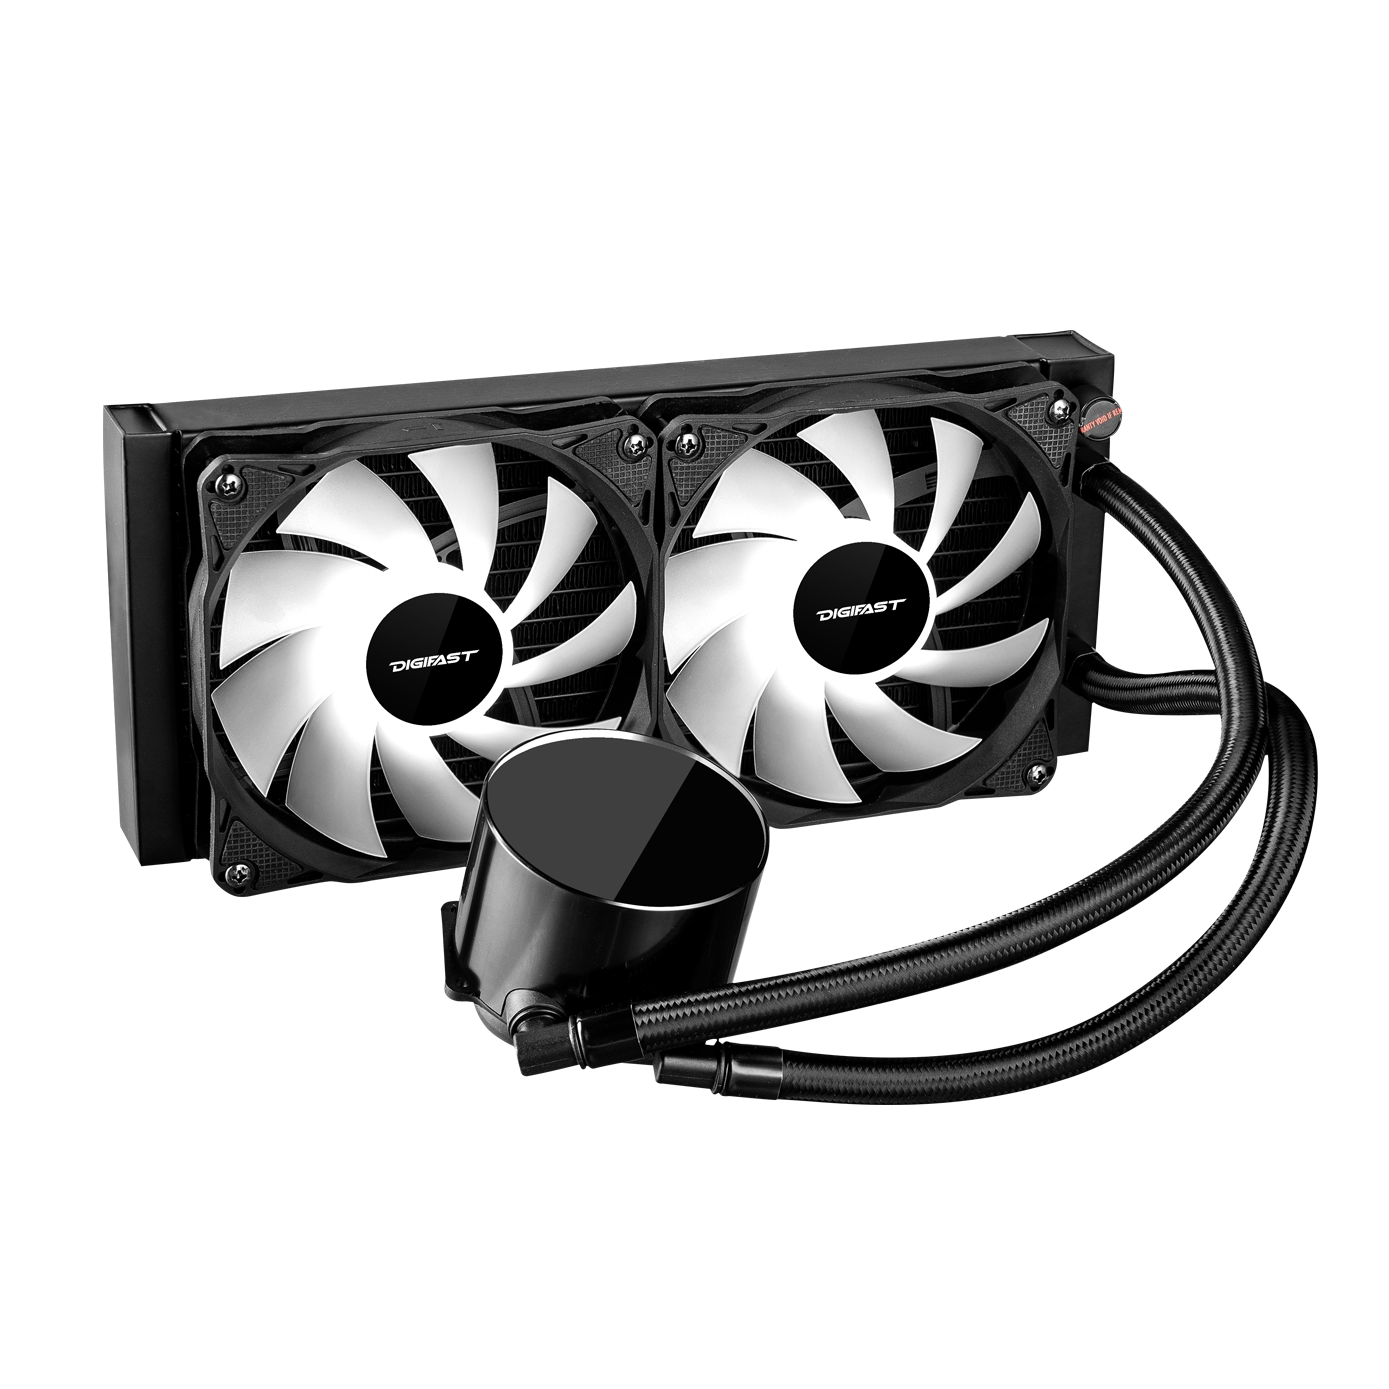 Digifast Notos AIO CPU cooler with 240 mm radiator